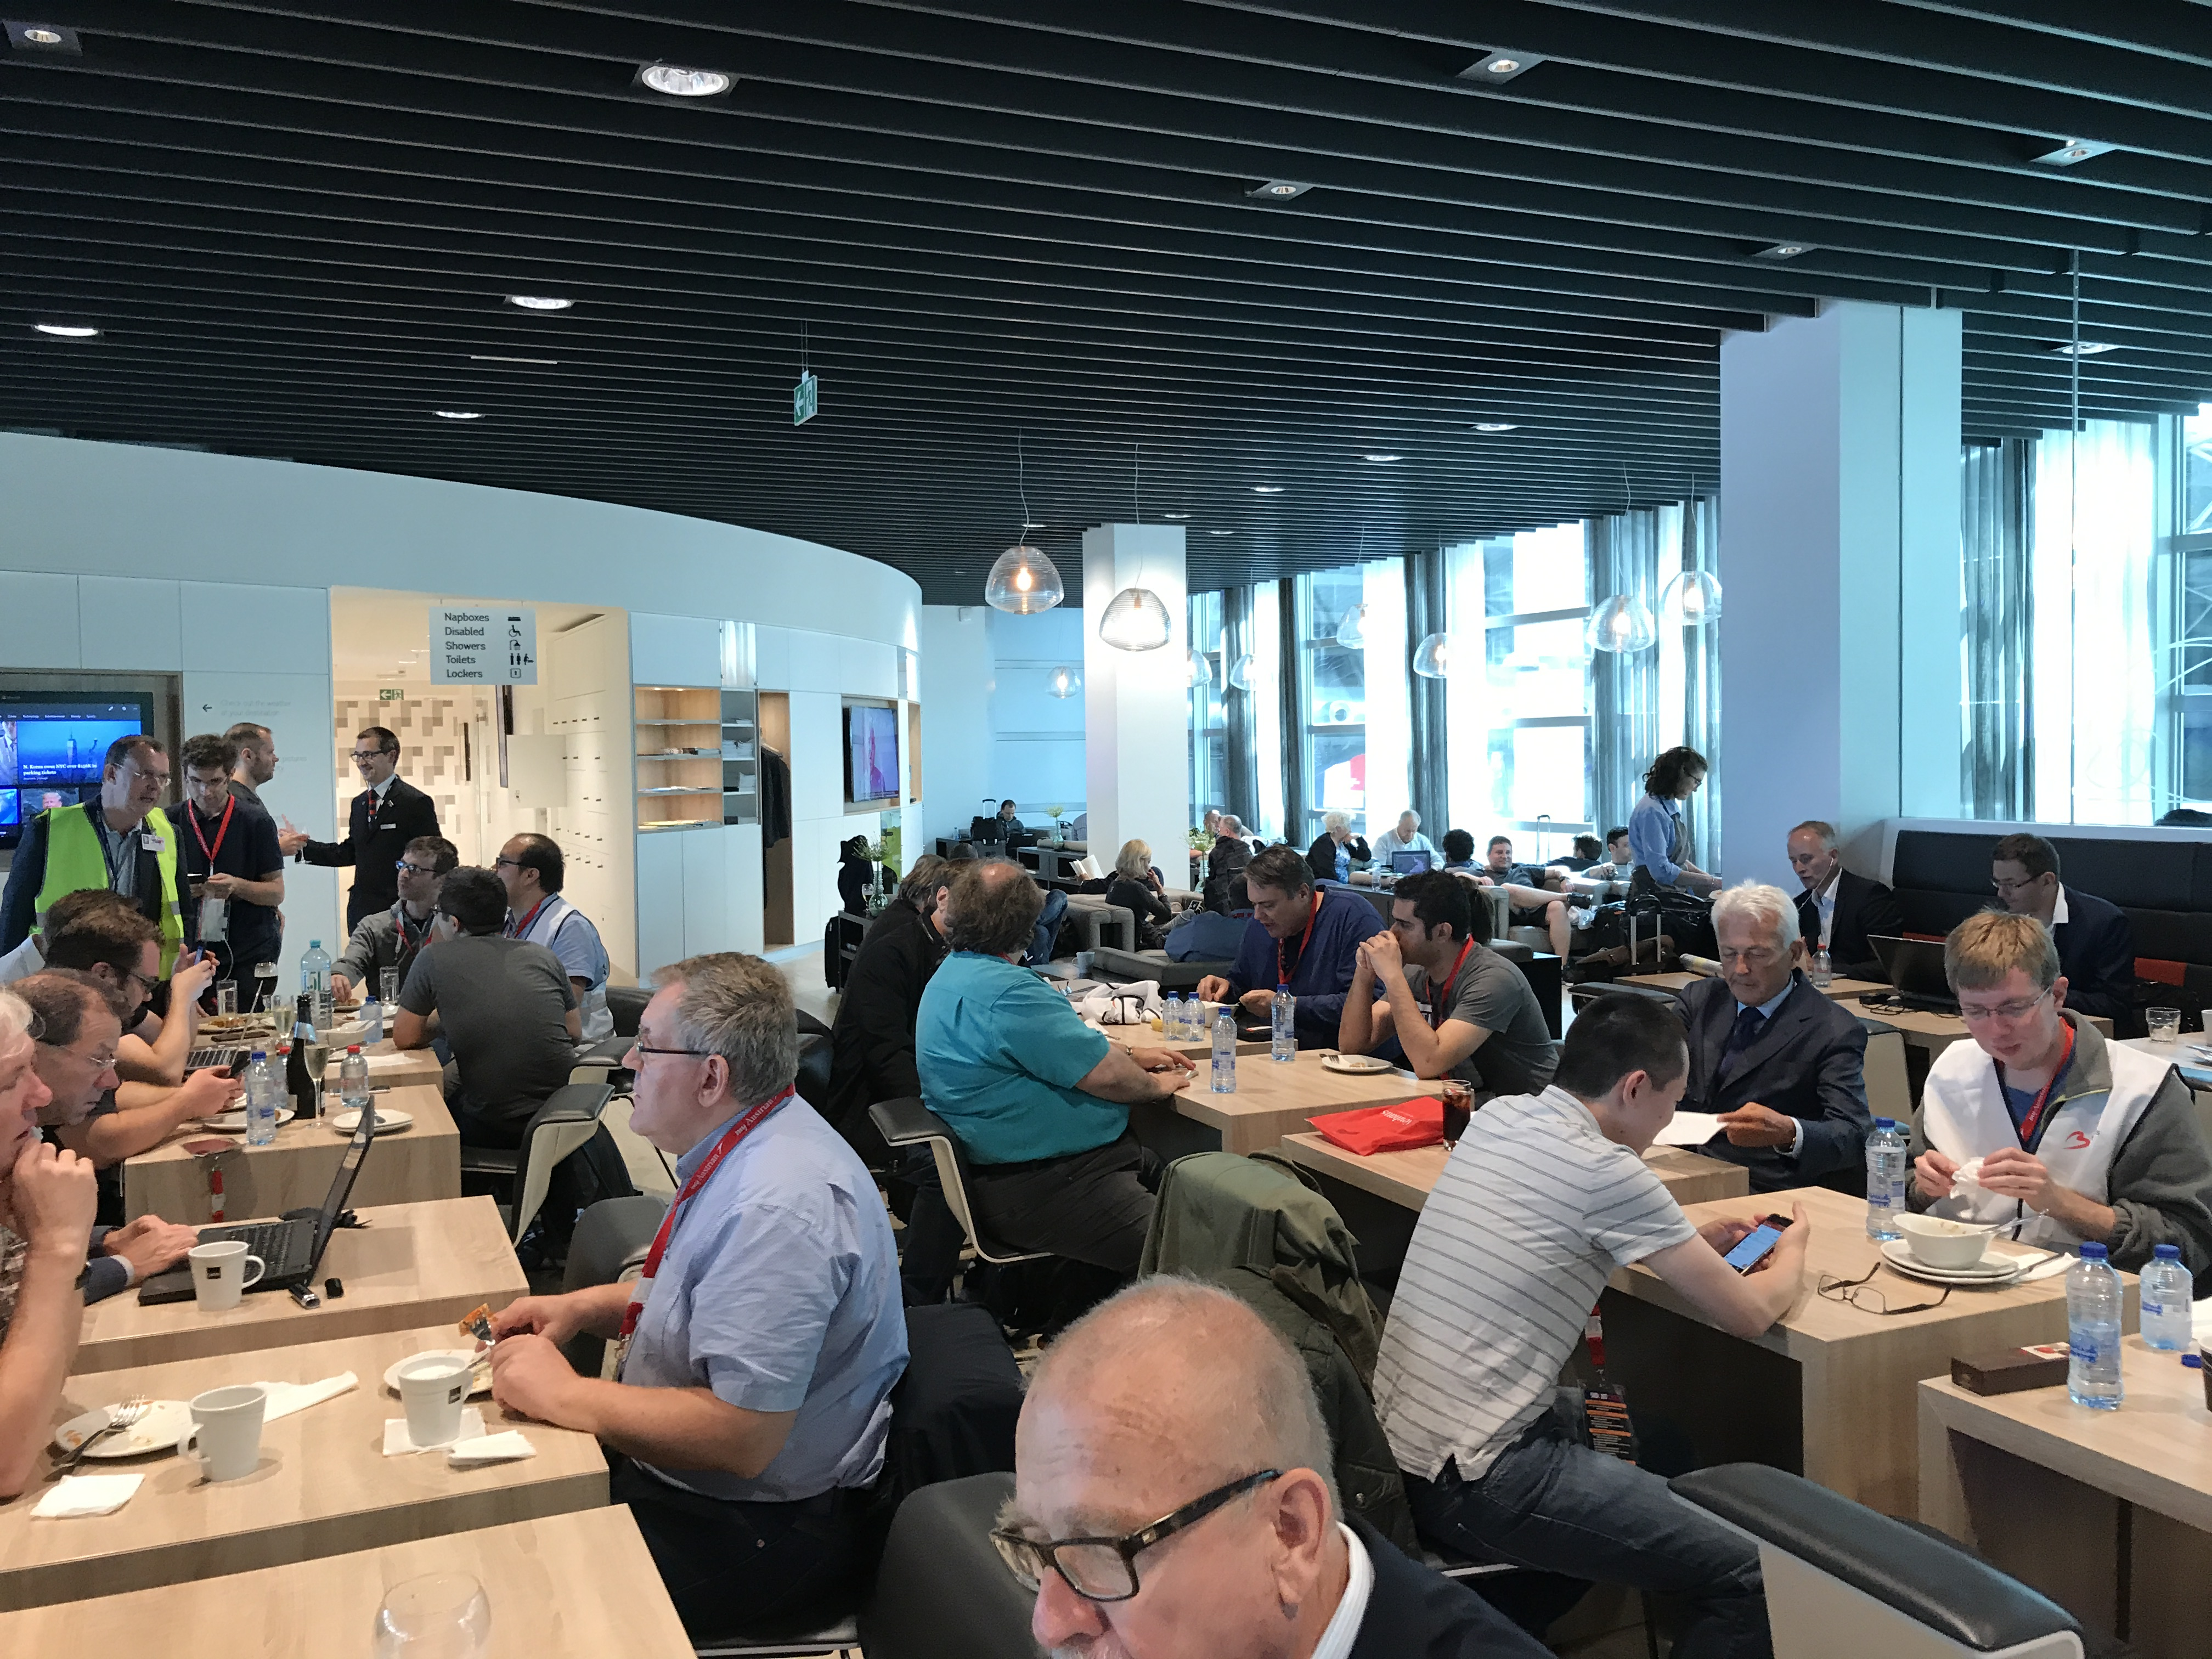 people working in the business class lounge at Brussels airport